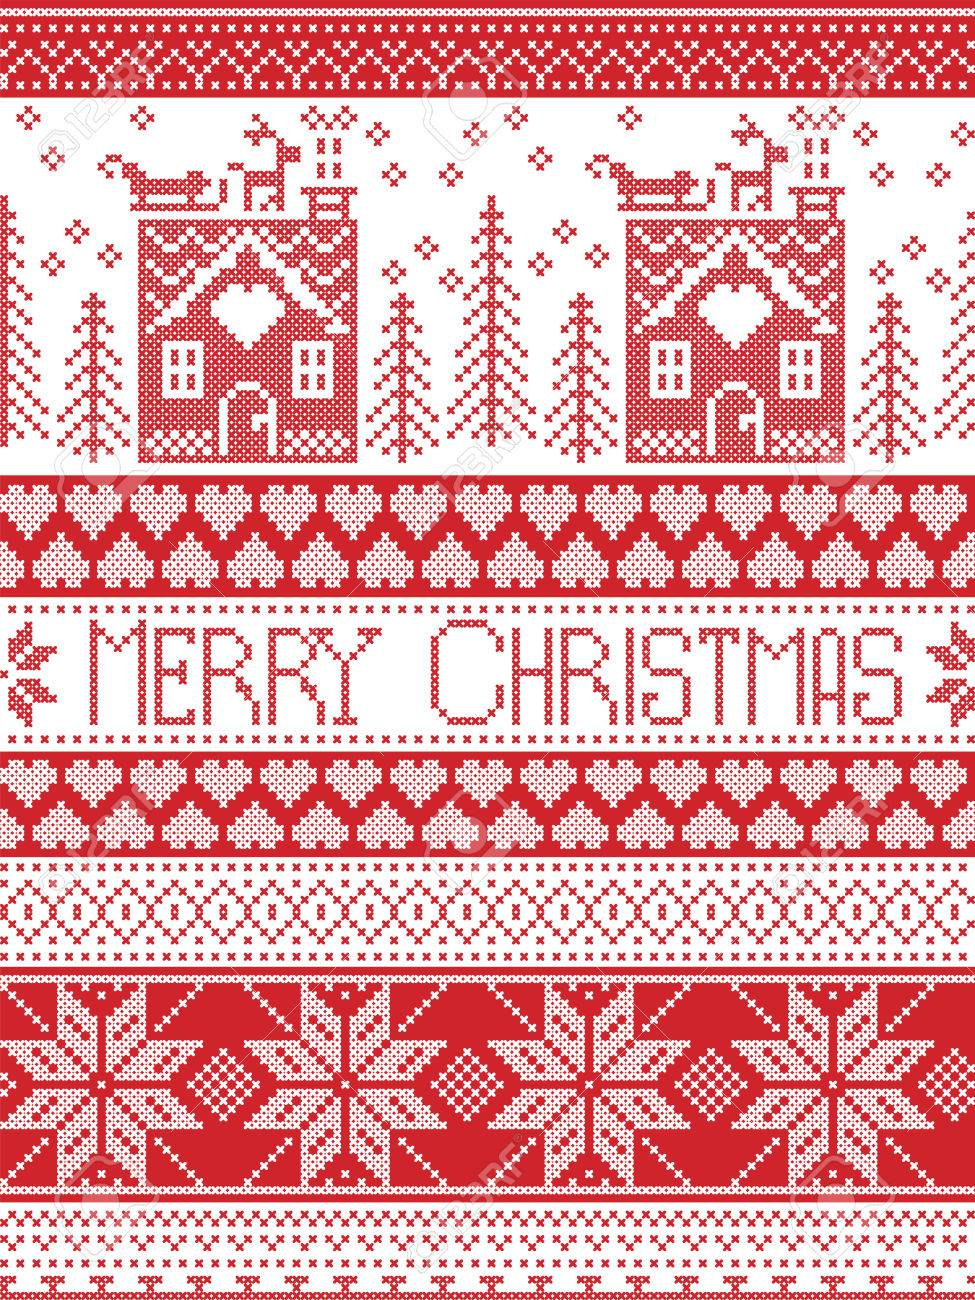 Merry Christmas In Norwegian.Merry Christmas Scandinavian Textile Style Inspired By Norwegian